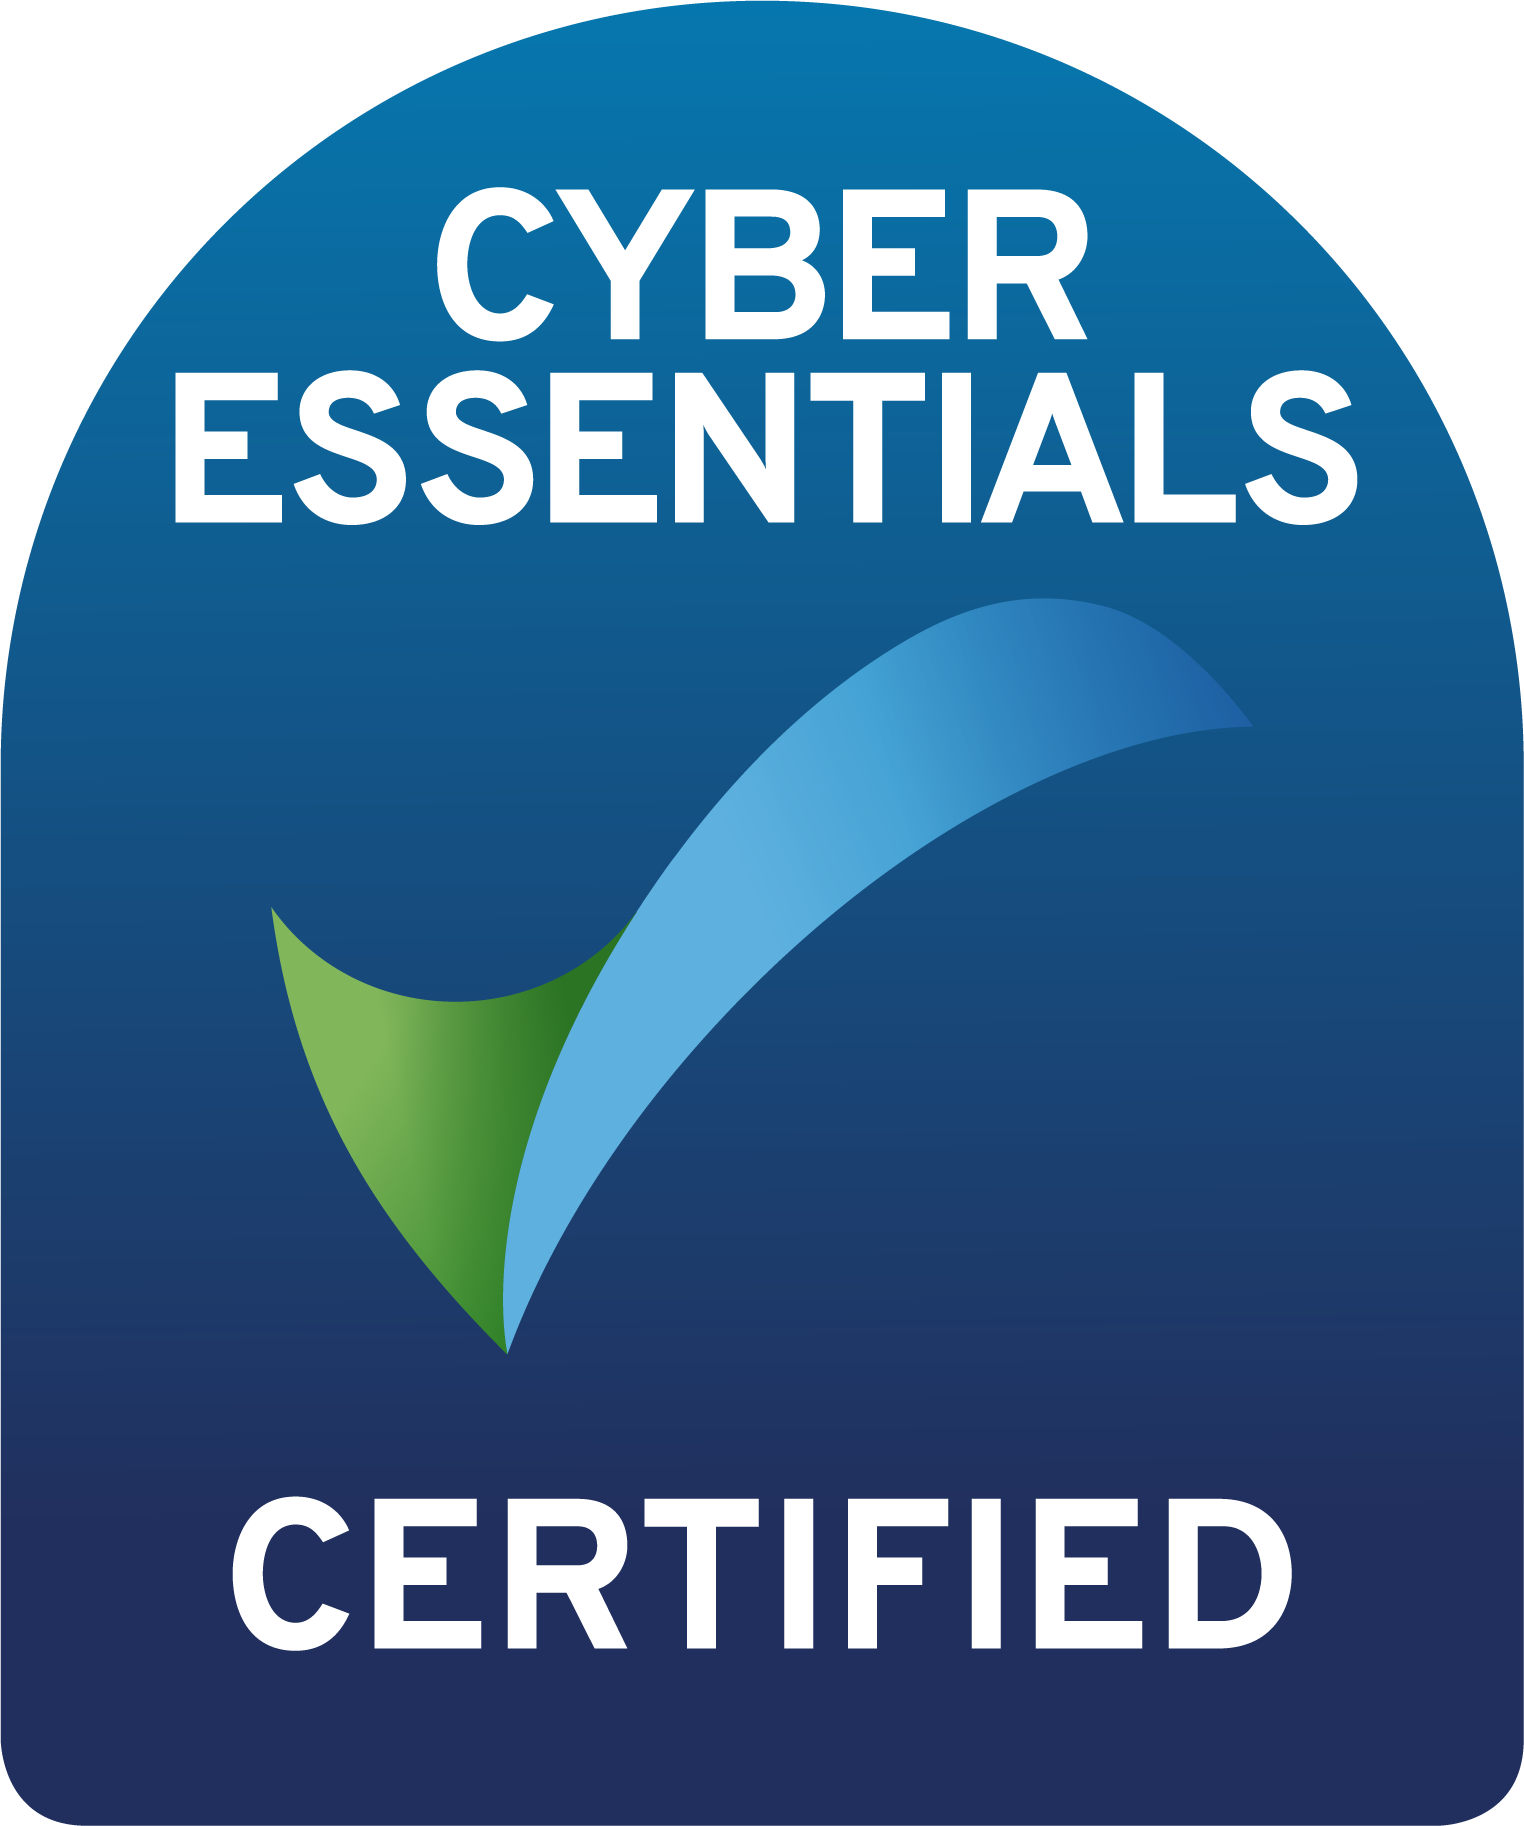 cyberessentials_certificationmark_colour